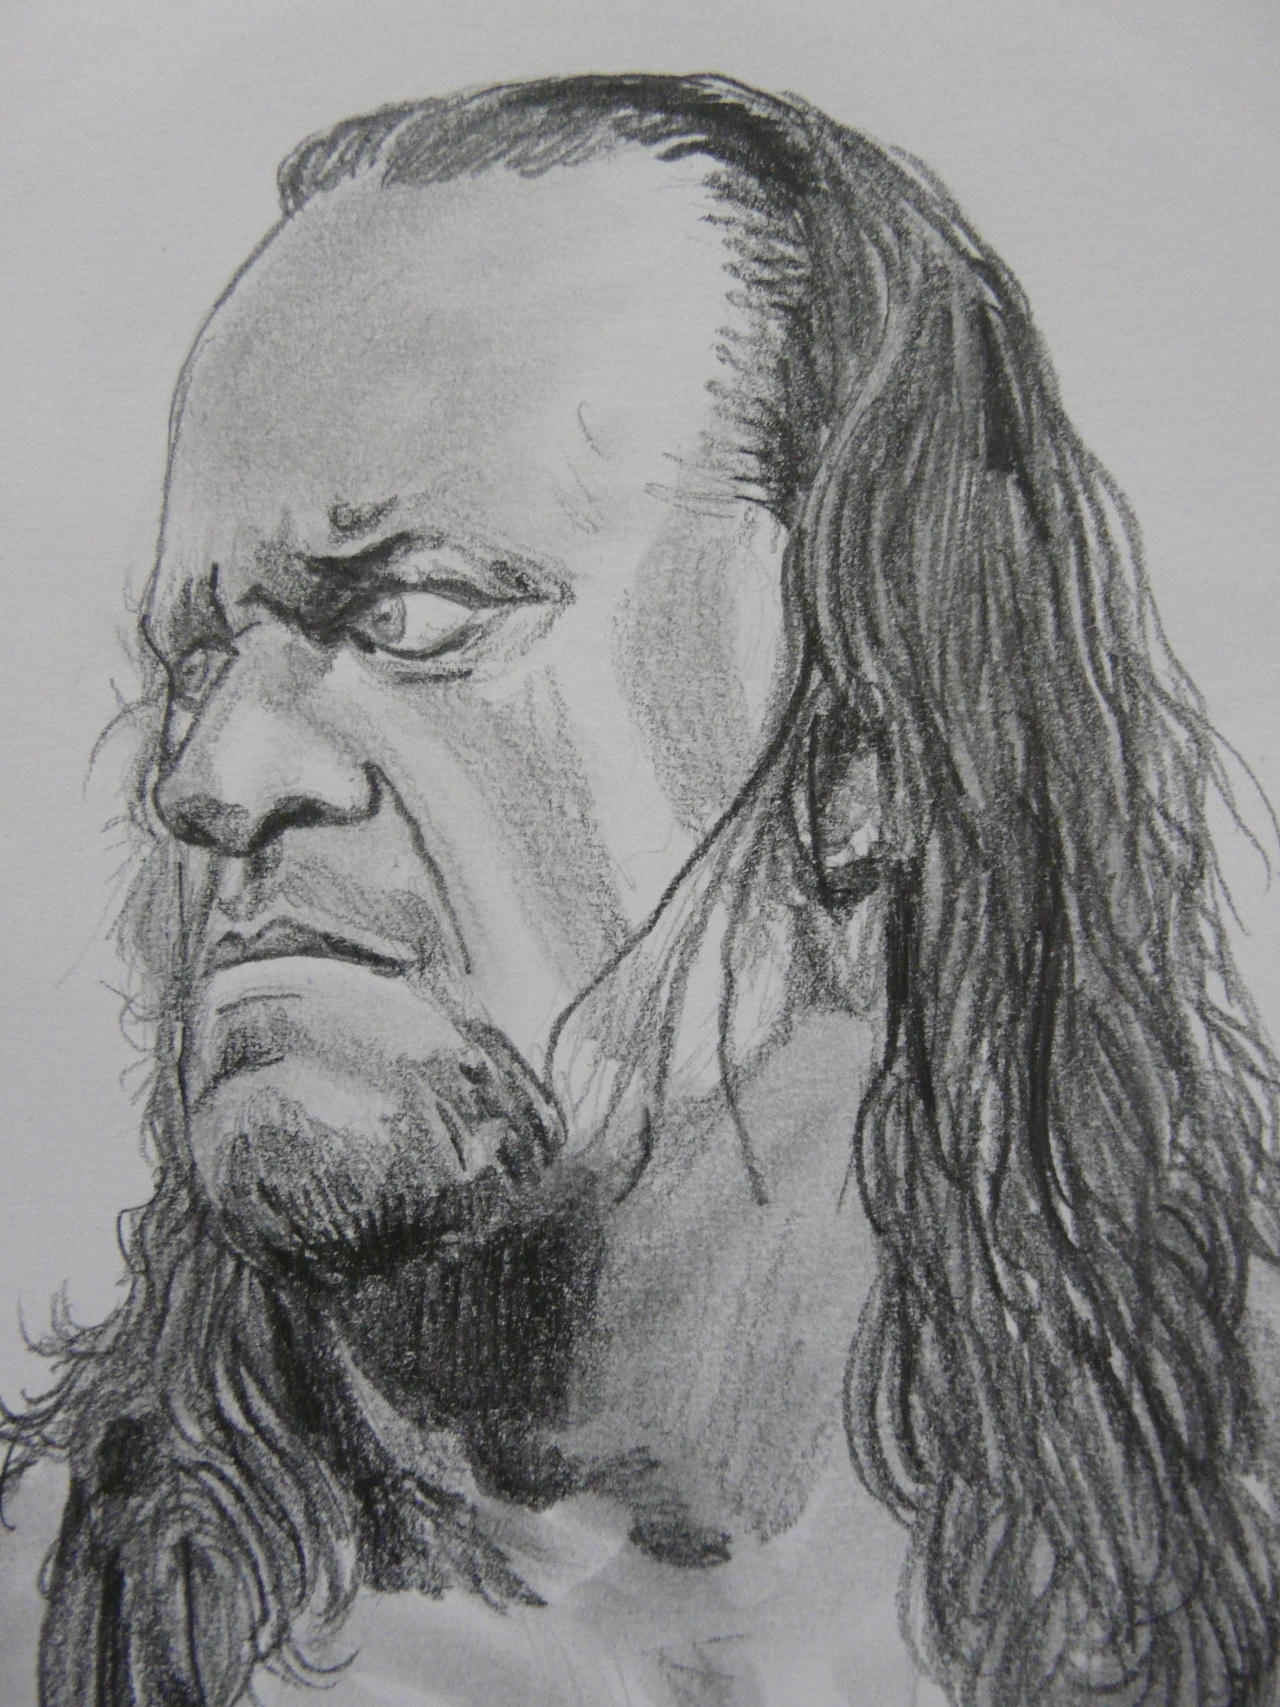 Wwe The Undertaker 1990s Wwe undertaker 6 by vinceart